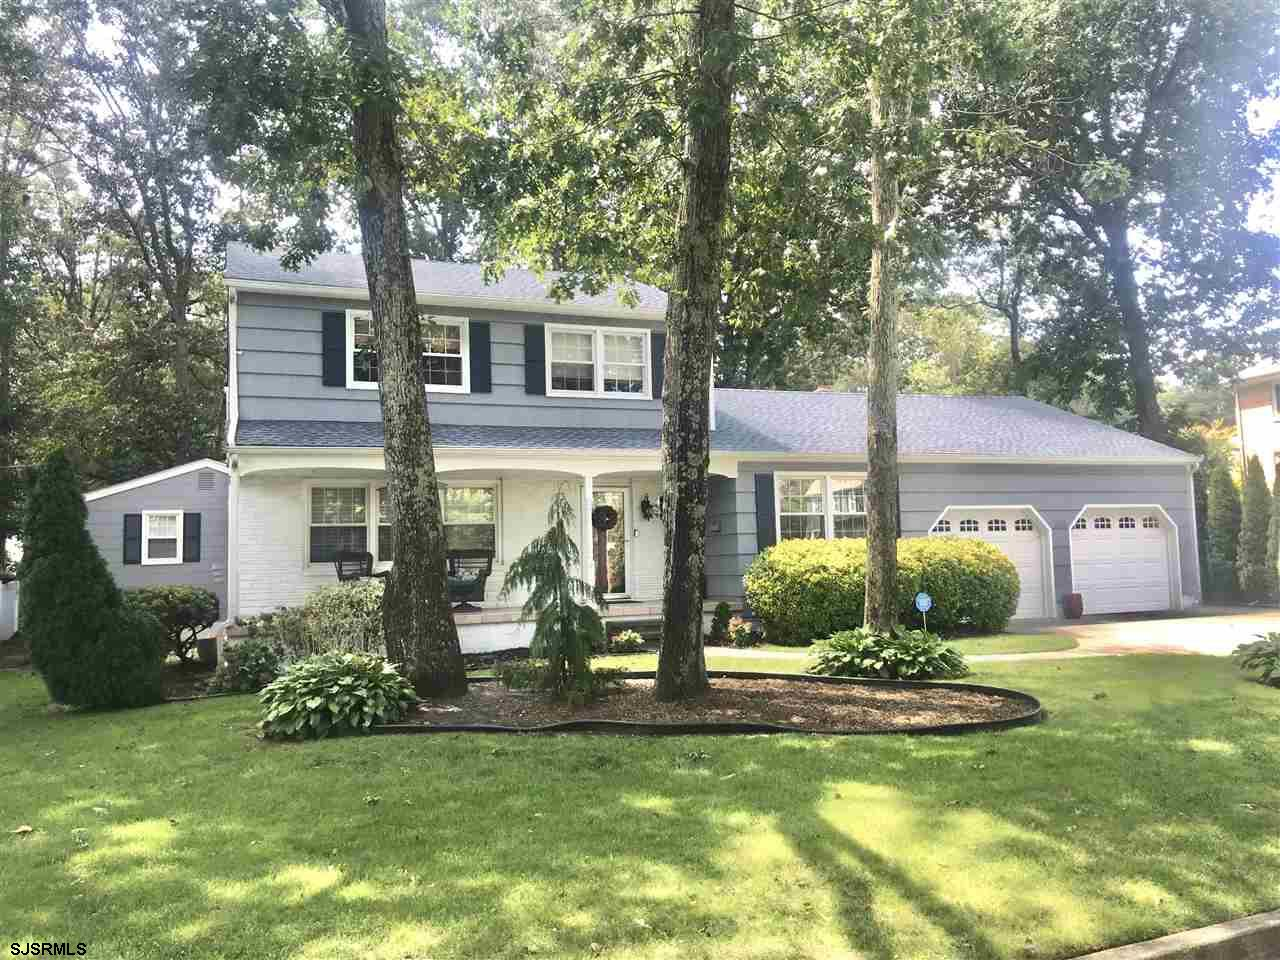 Large upgraded, updated, and customized family Colonial in one of Linwood's most desired neighborhood locations. Four large bedrooms on 2nd floor, plus first floor MBR suite. Kitchen, baths, flooring, stately wood den/library, and brand new gas ht/CA. All add value and class to this newly listed gem. From first impression of the location, lot, and exterior attraction...you'll be drawn inside to enjoy the above mentioned details. Oversized 2-car garage, huge sunny rear deck, screen porch, and the versatile island style kitchen add value and appeal.